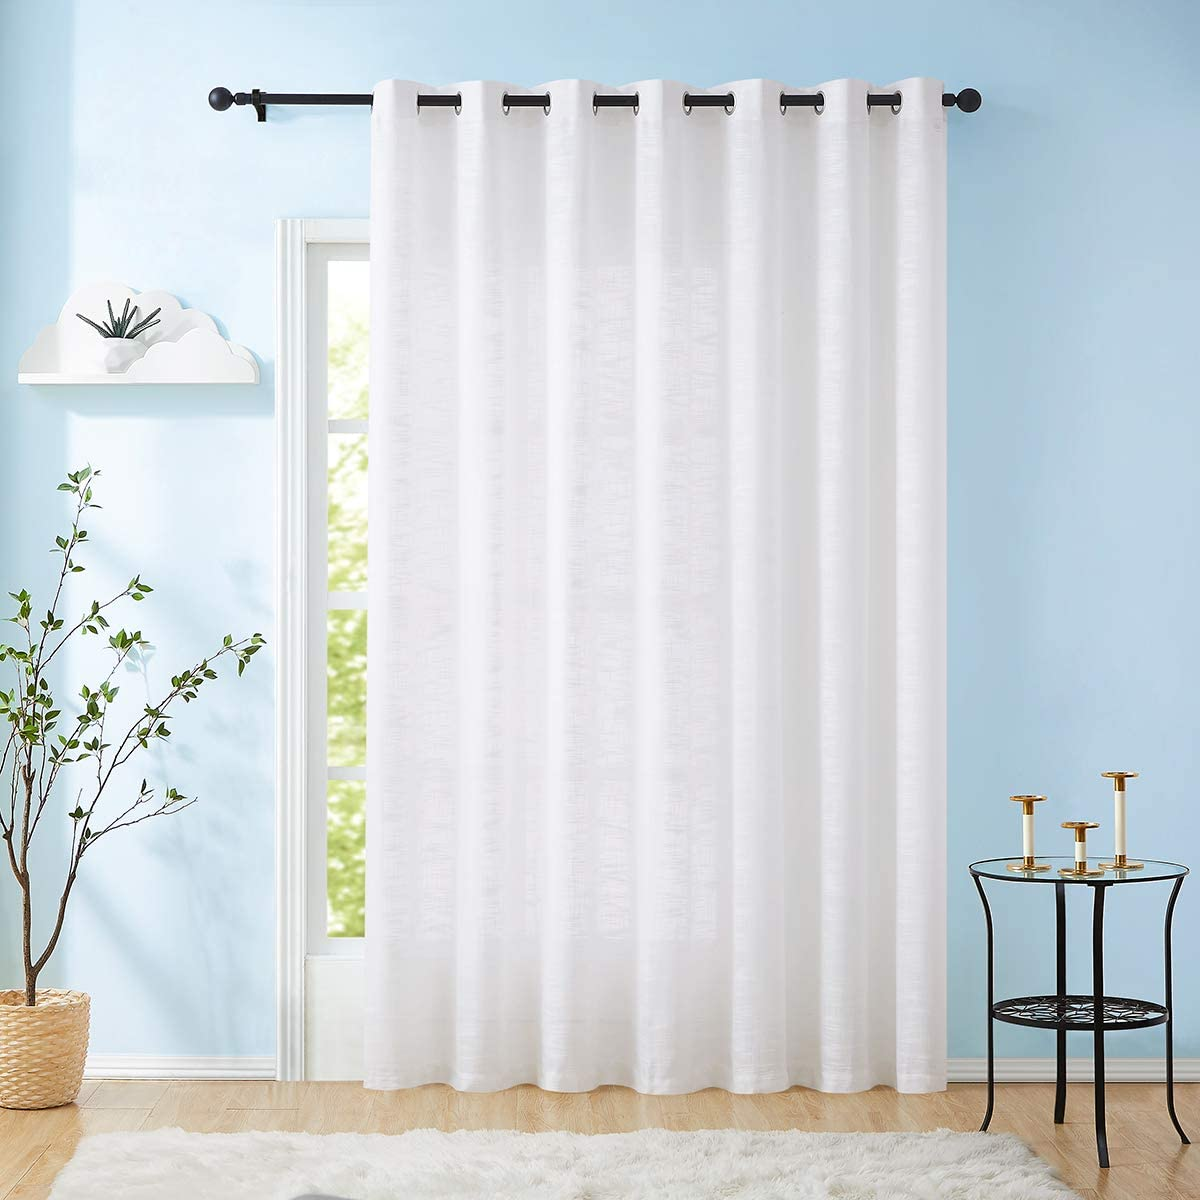 Linen Sheer White Curtains Sliding Door Curtain 108-inches Long Patio Glass Door Curtain Panel 100 Width Rich Cross Weave Textured Semi-Sheers Living Room Divider Bedroom Window Draperies 1pc